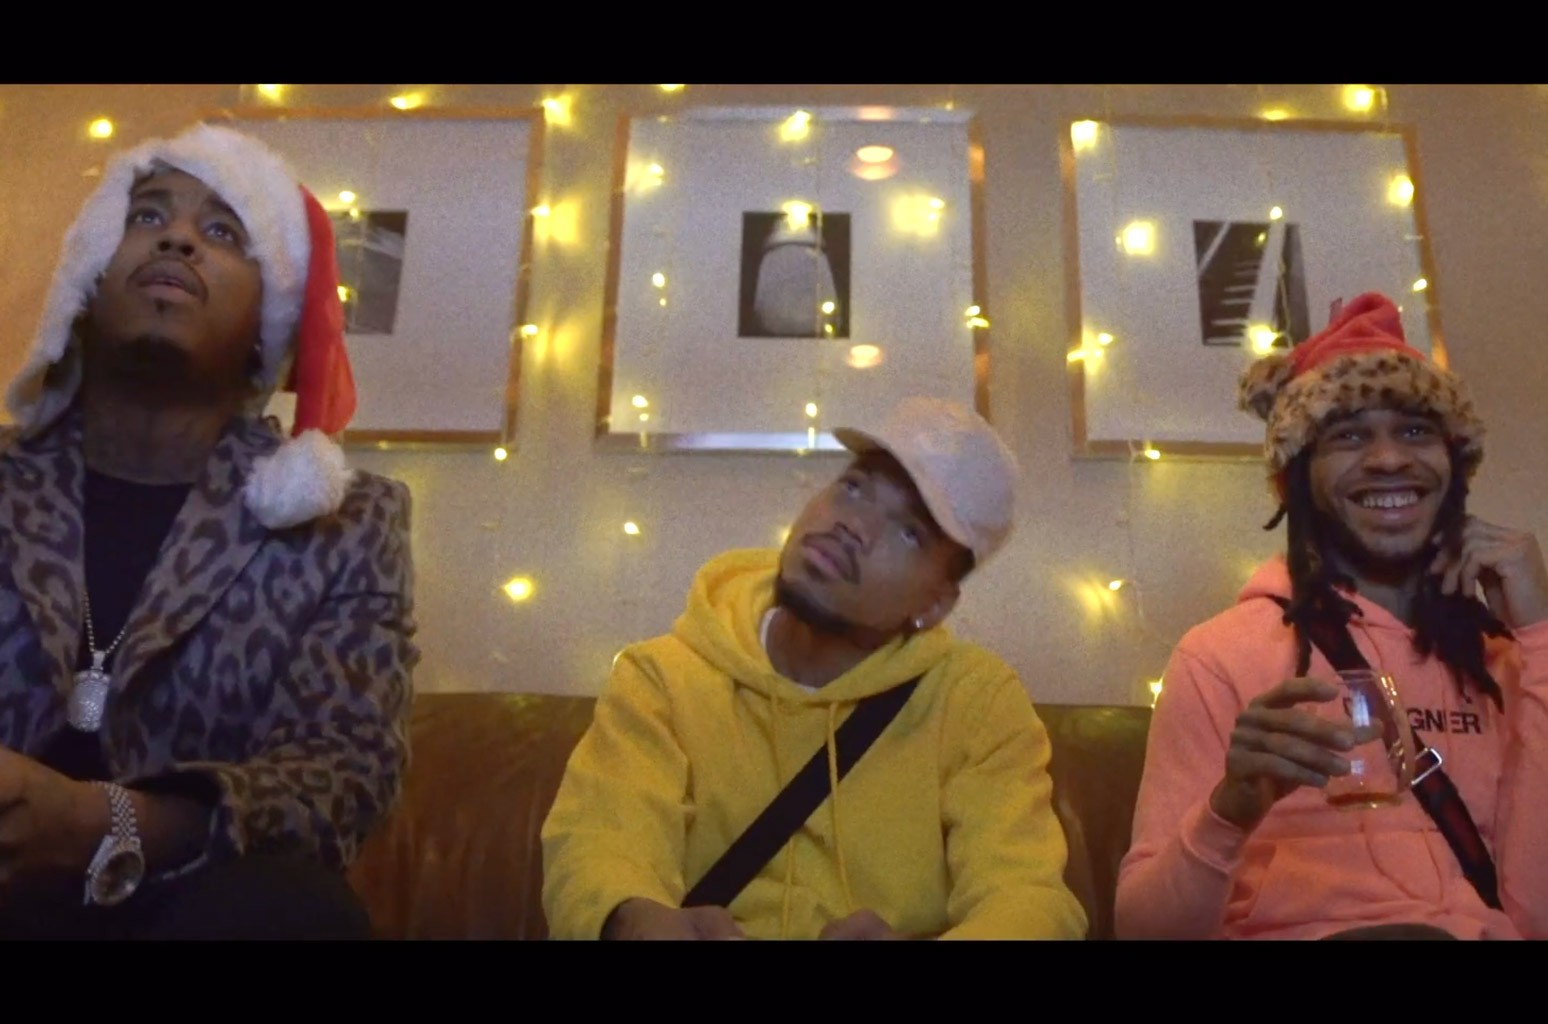 Watch Chance the Rapper, Jeremih & Valee Light Up a Christmas Party in 'Are U Live' Video